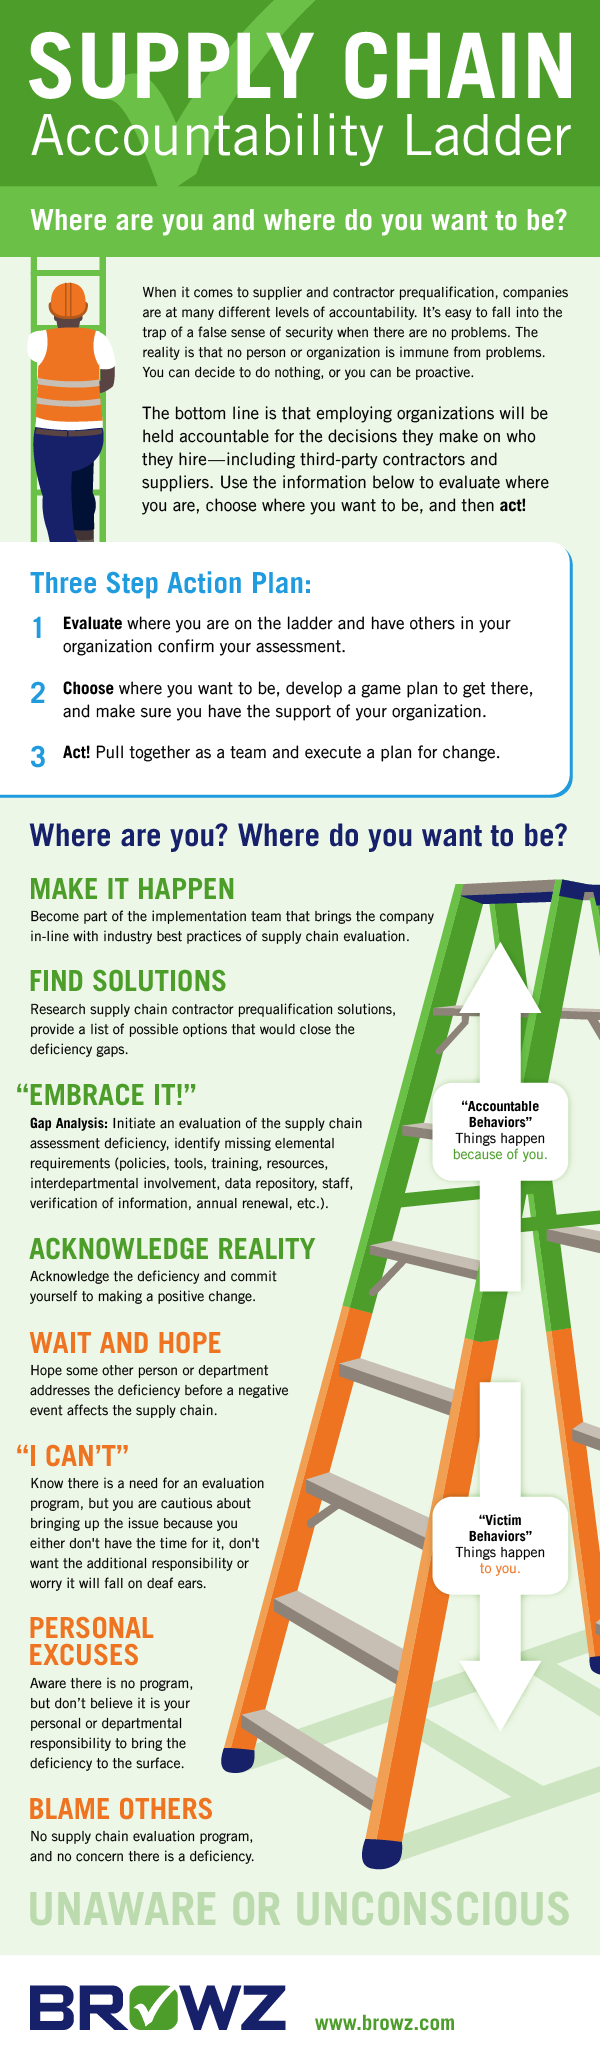 Supply Chain Accountability Ladder Infographic Supply Chain Logistics Supply Chain Supply Chain Management